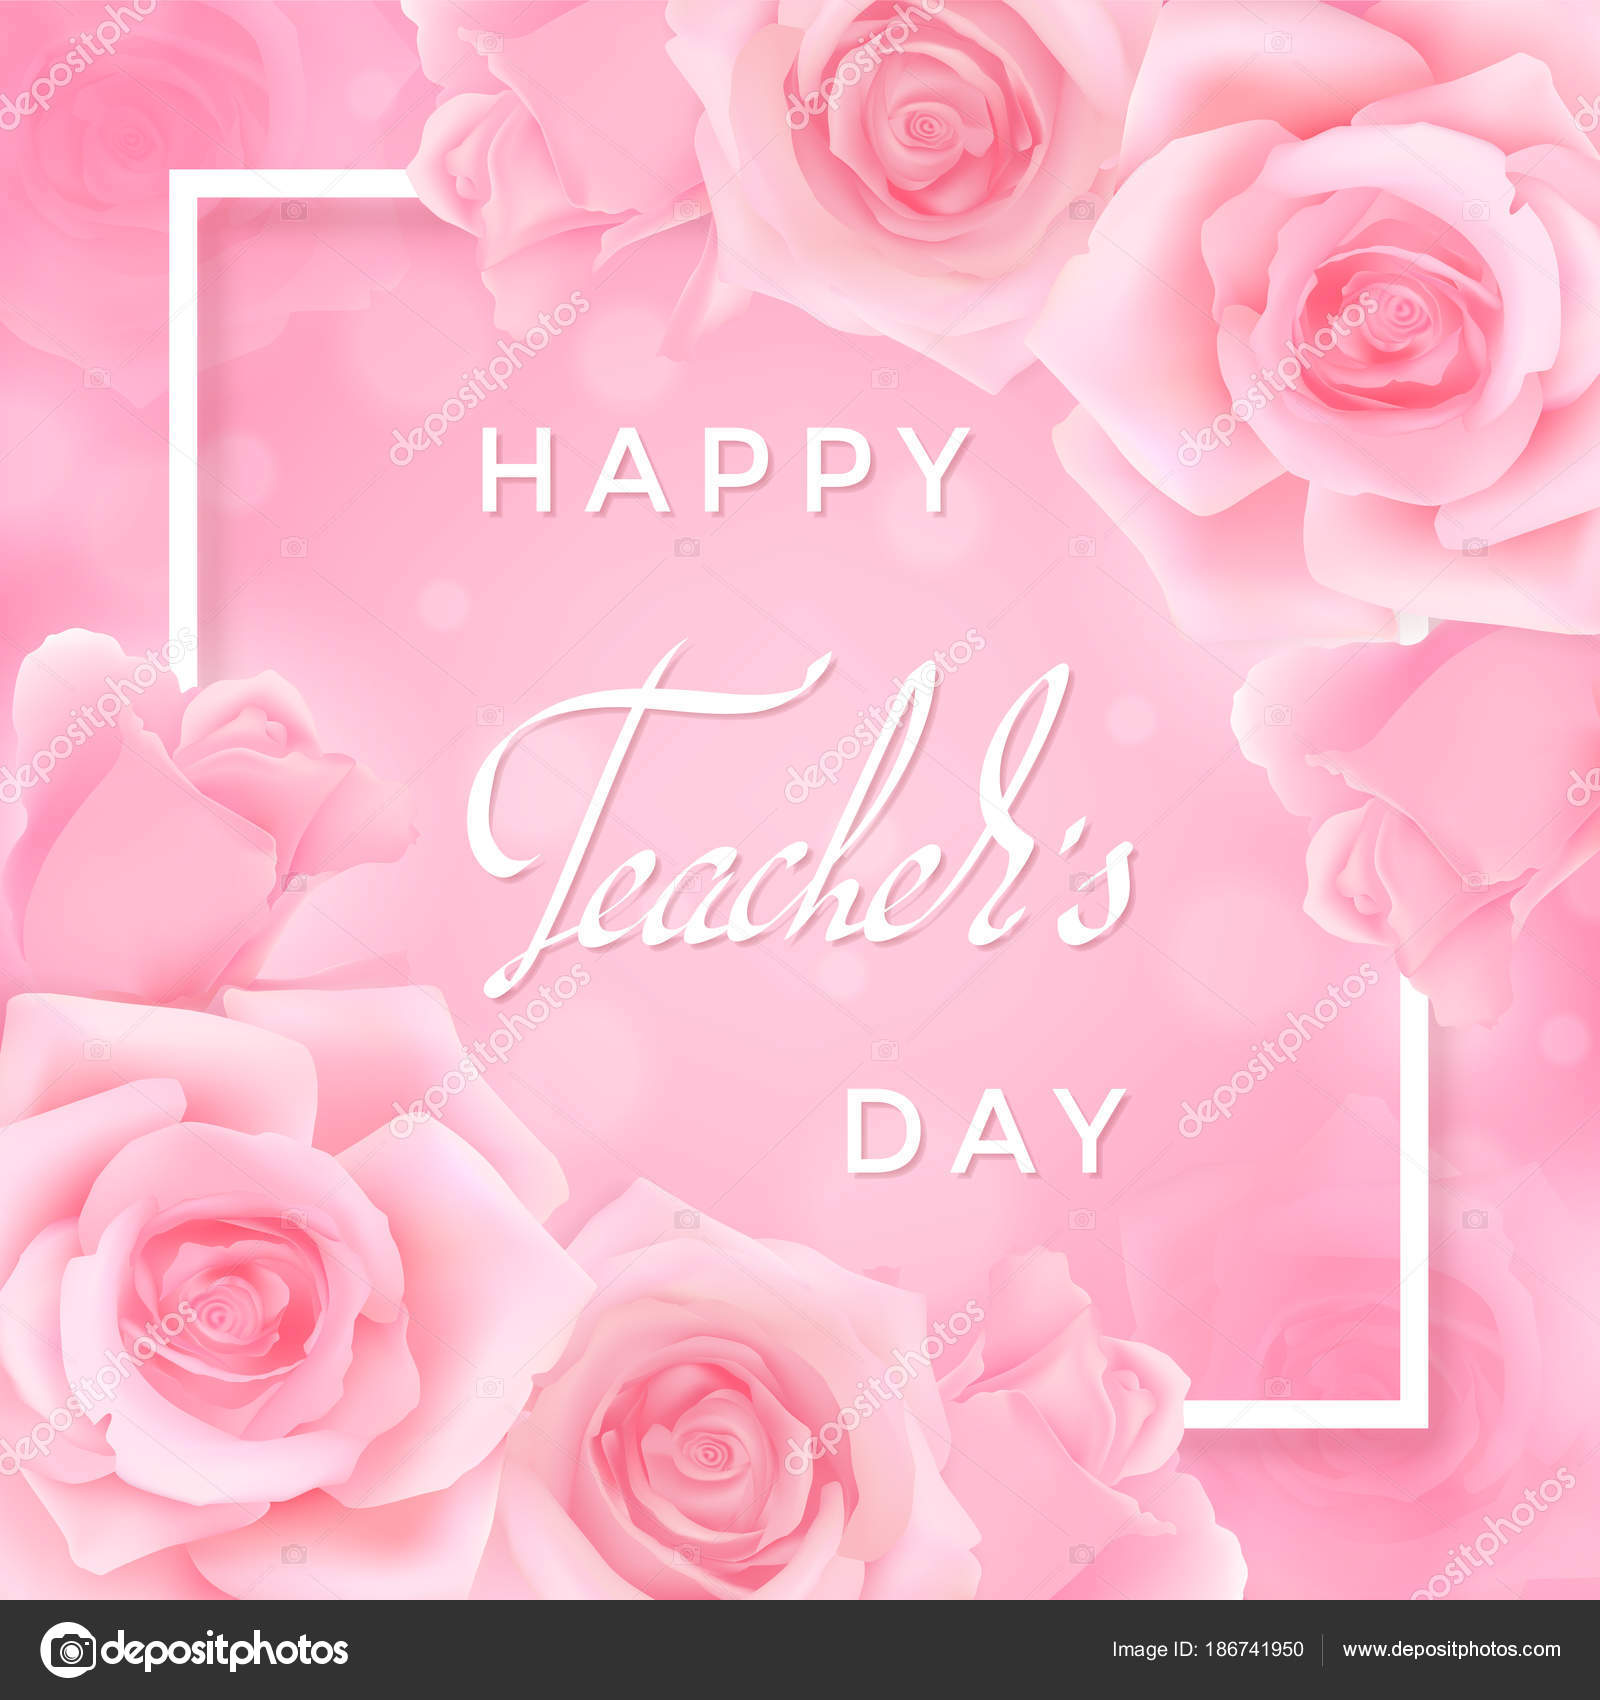 Happy teachers day greeting card pink roses white frame hand stock happy teachers day greeting card pink roses white frame hand stock vector m4hsunfo